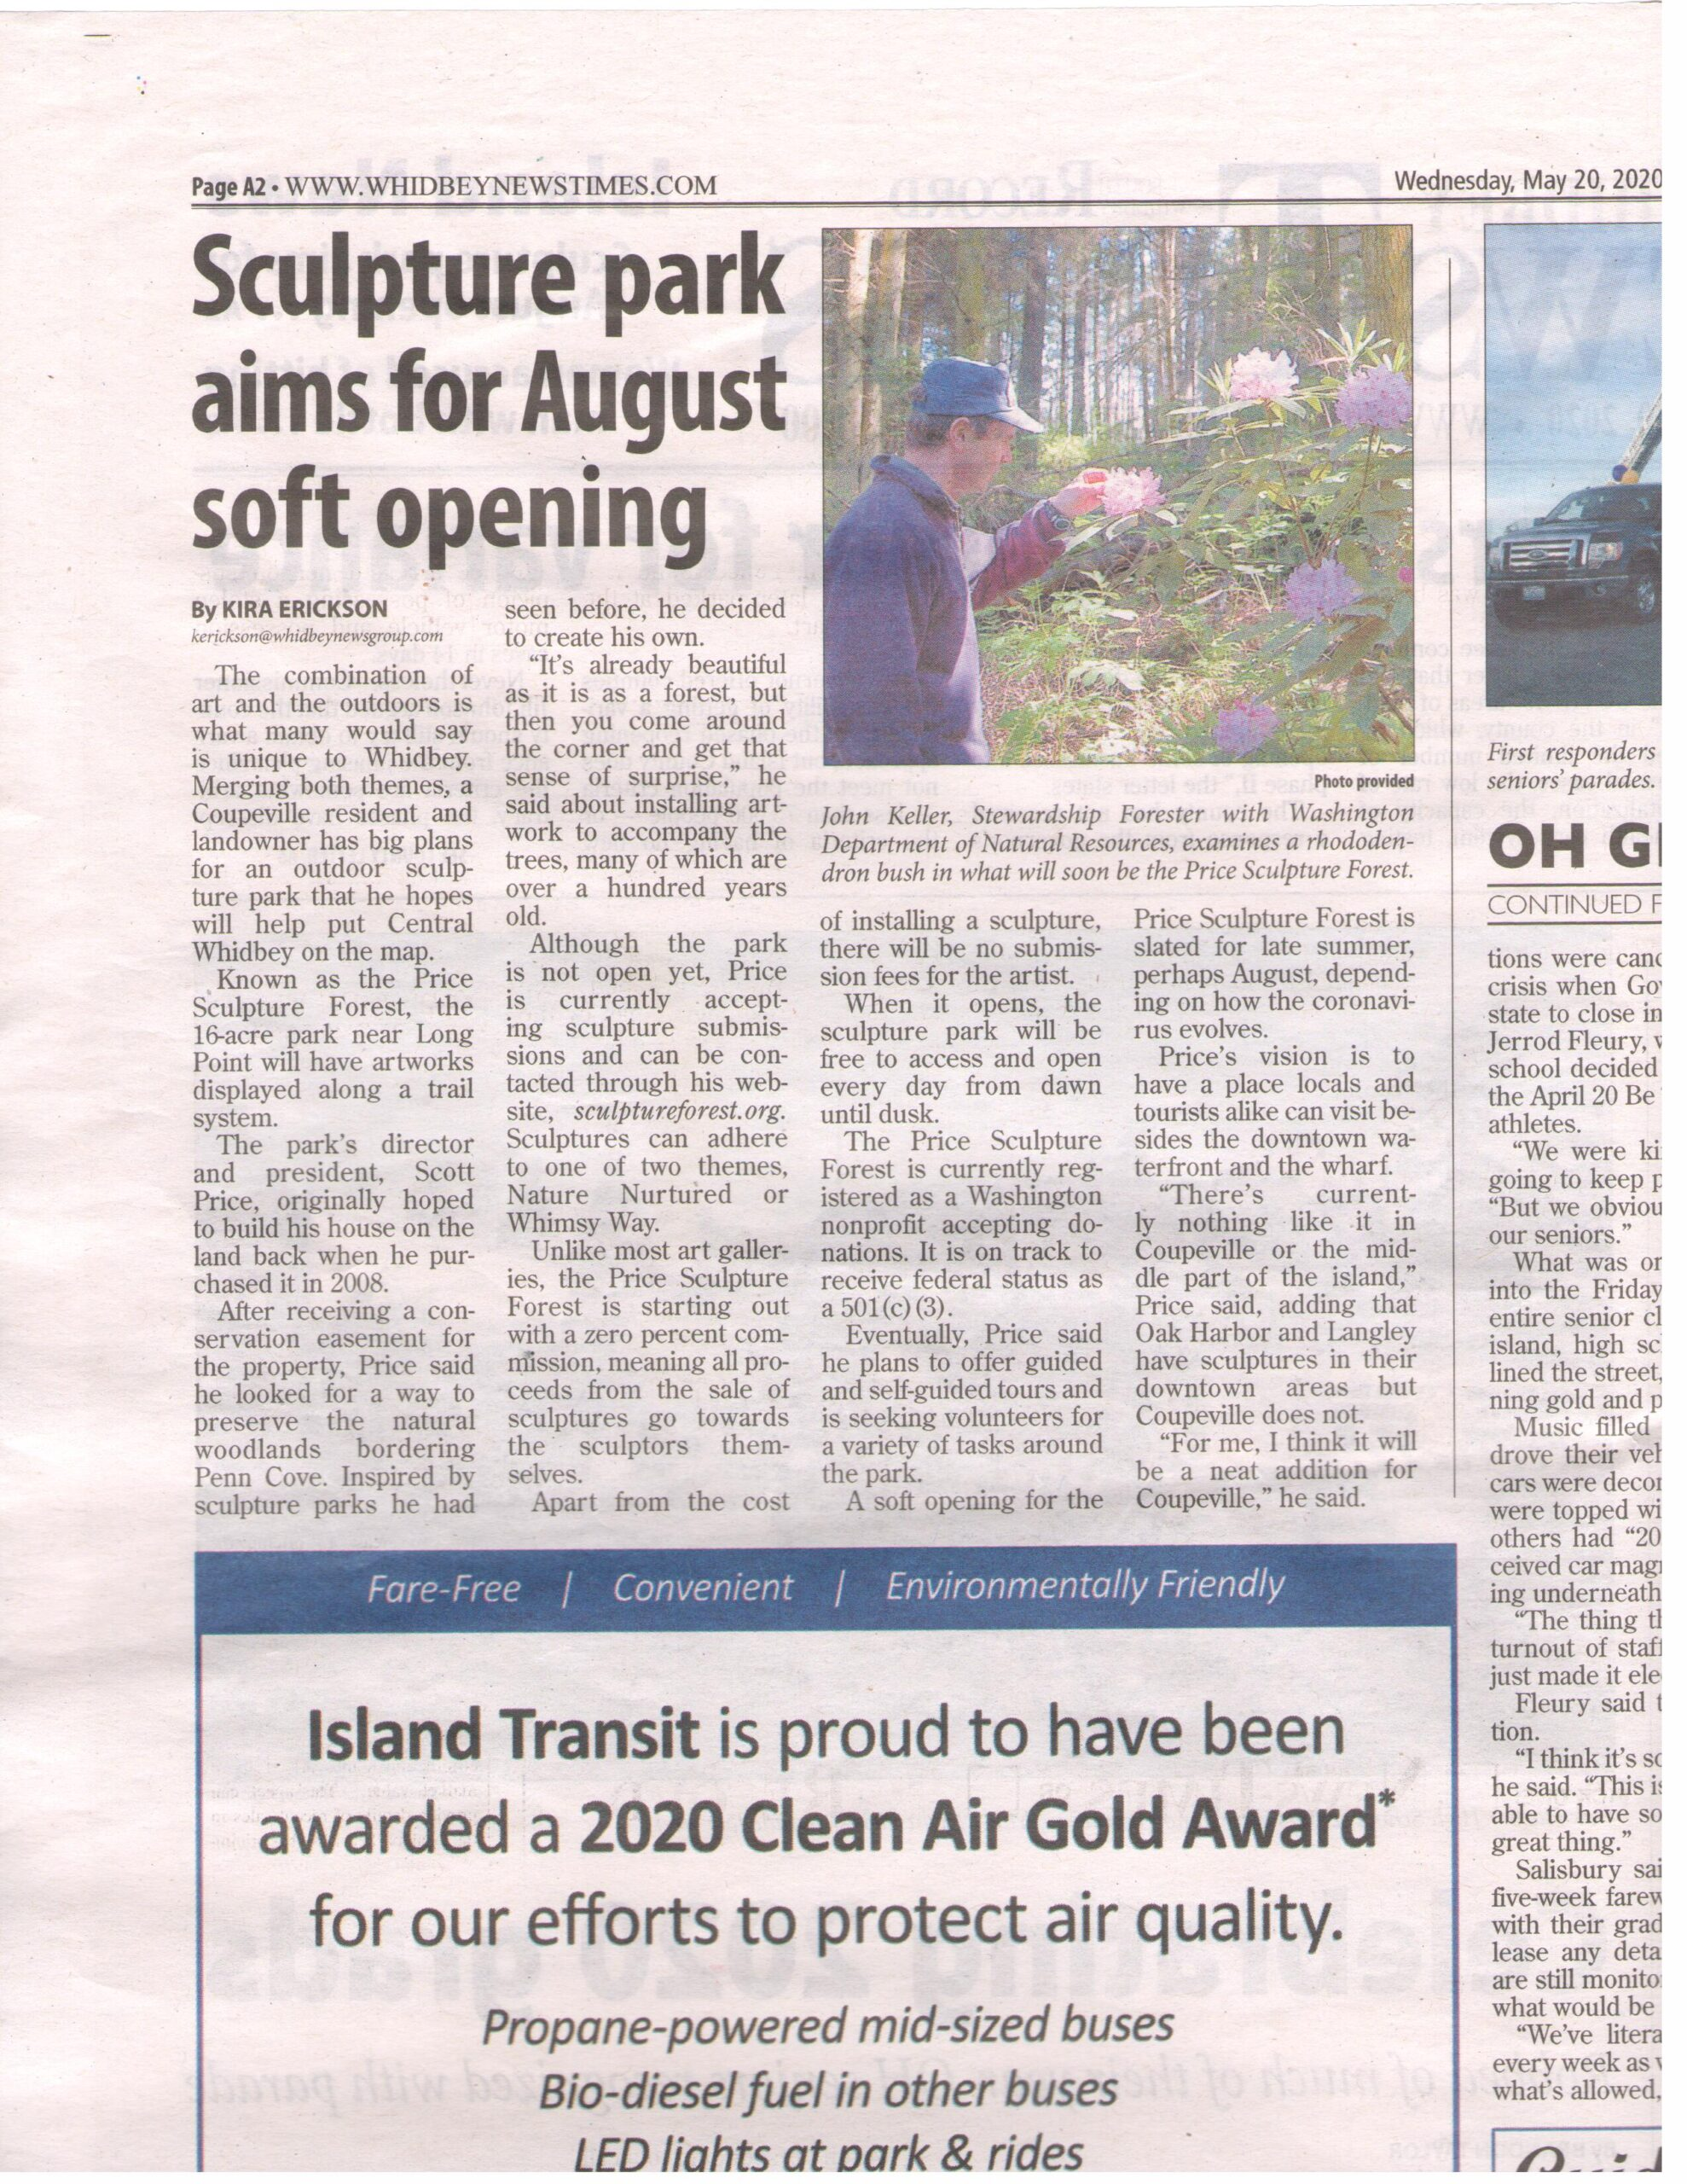 2020-05-20 Whidbey News Times article about Price Sculpture Forest under construction